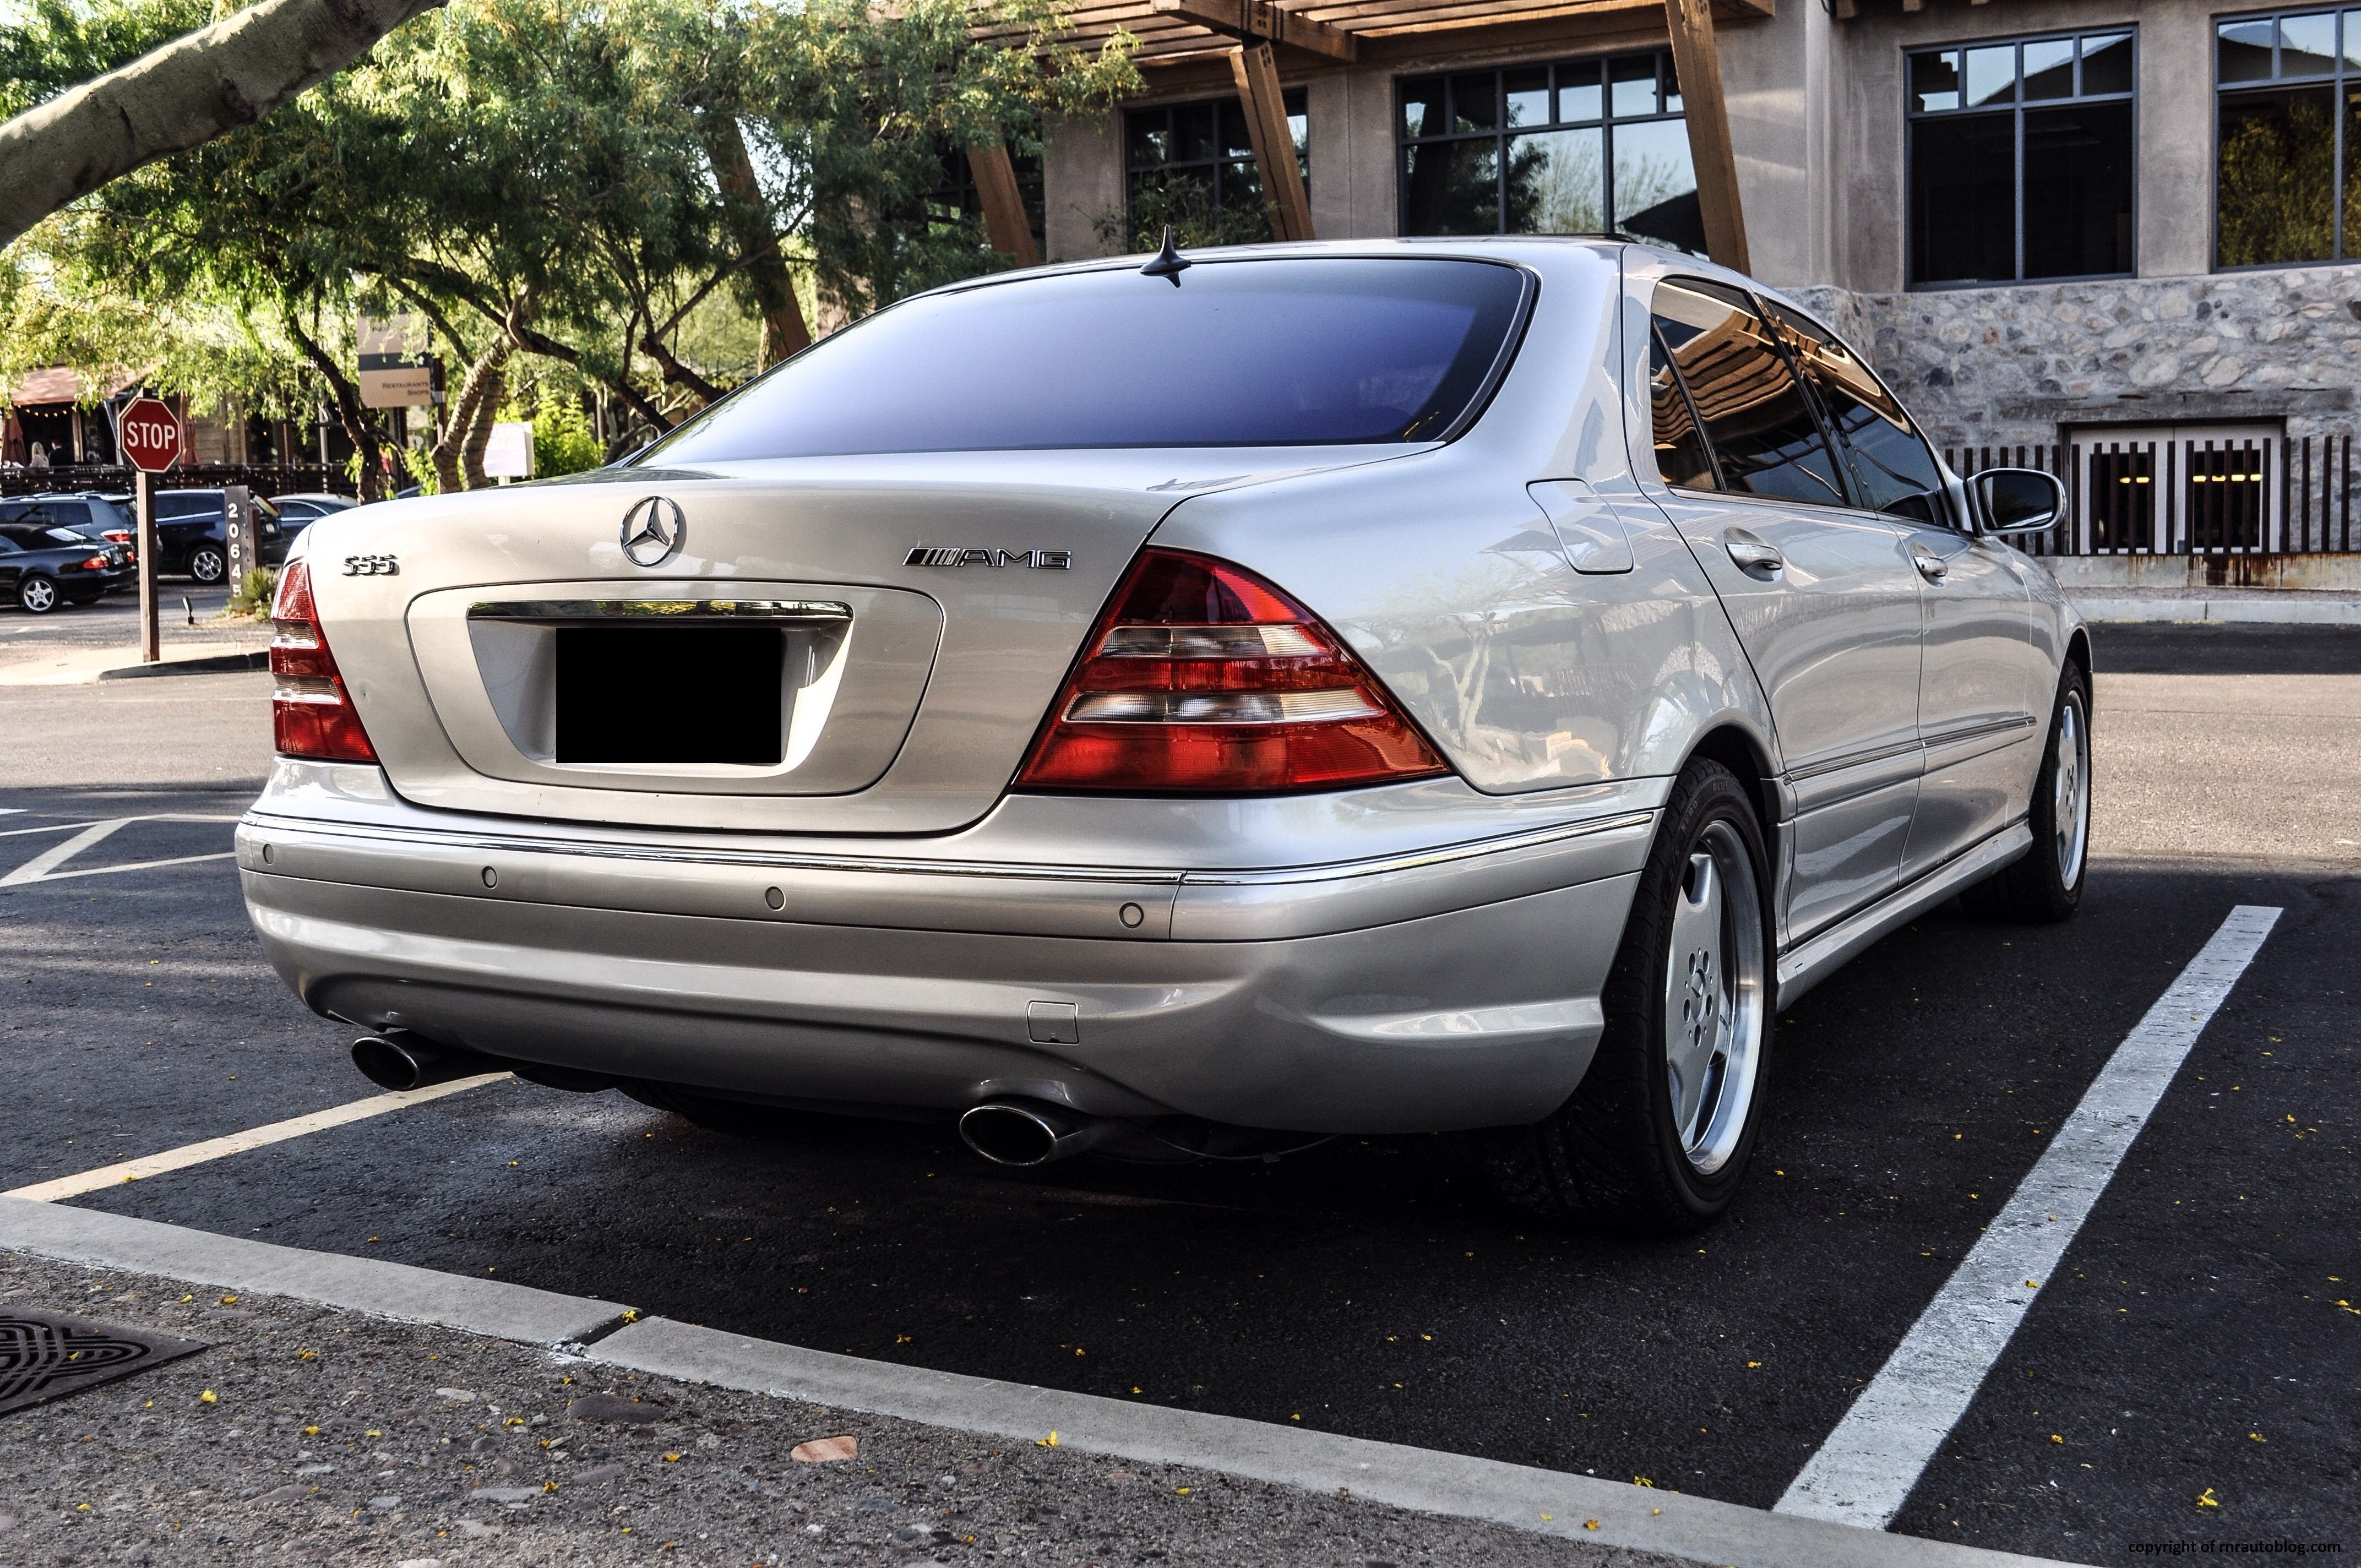 2001 mercedes benz s55 amg review rnr automotive blog for 2001 mercedes benz s55 amg